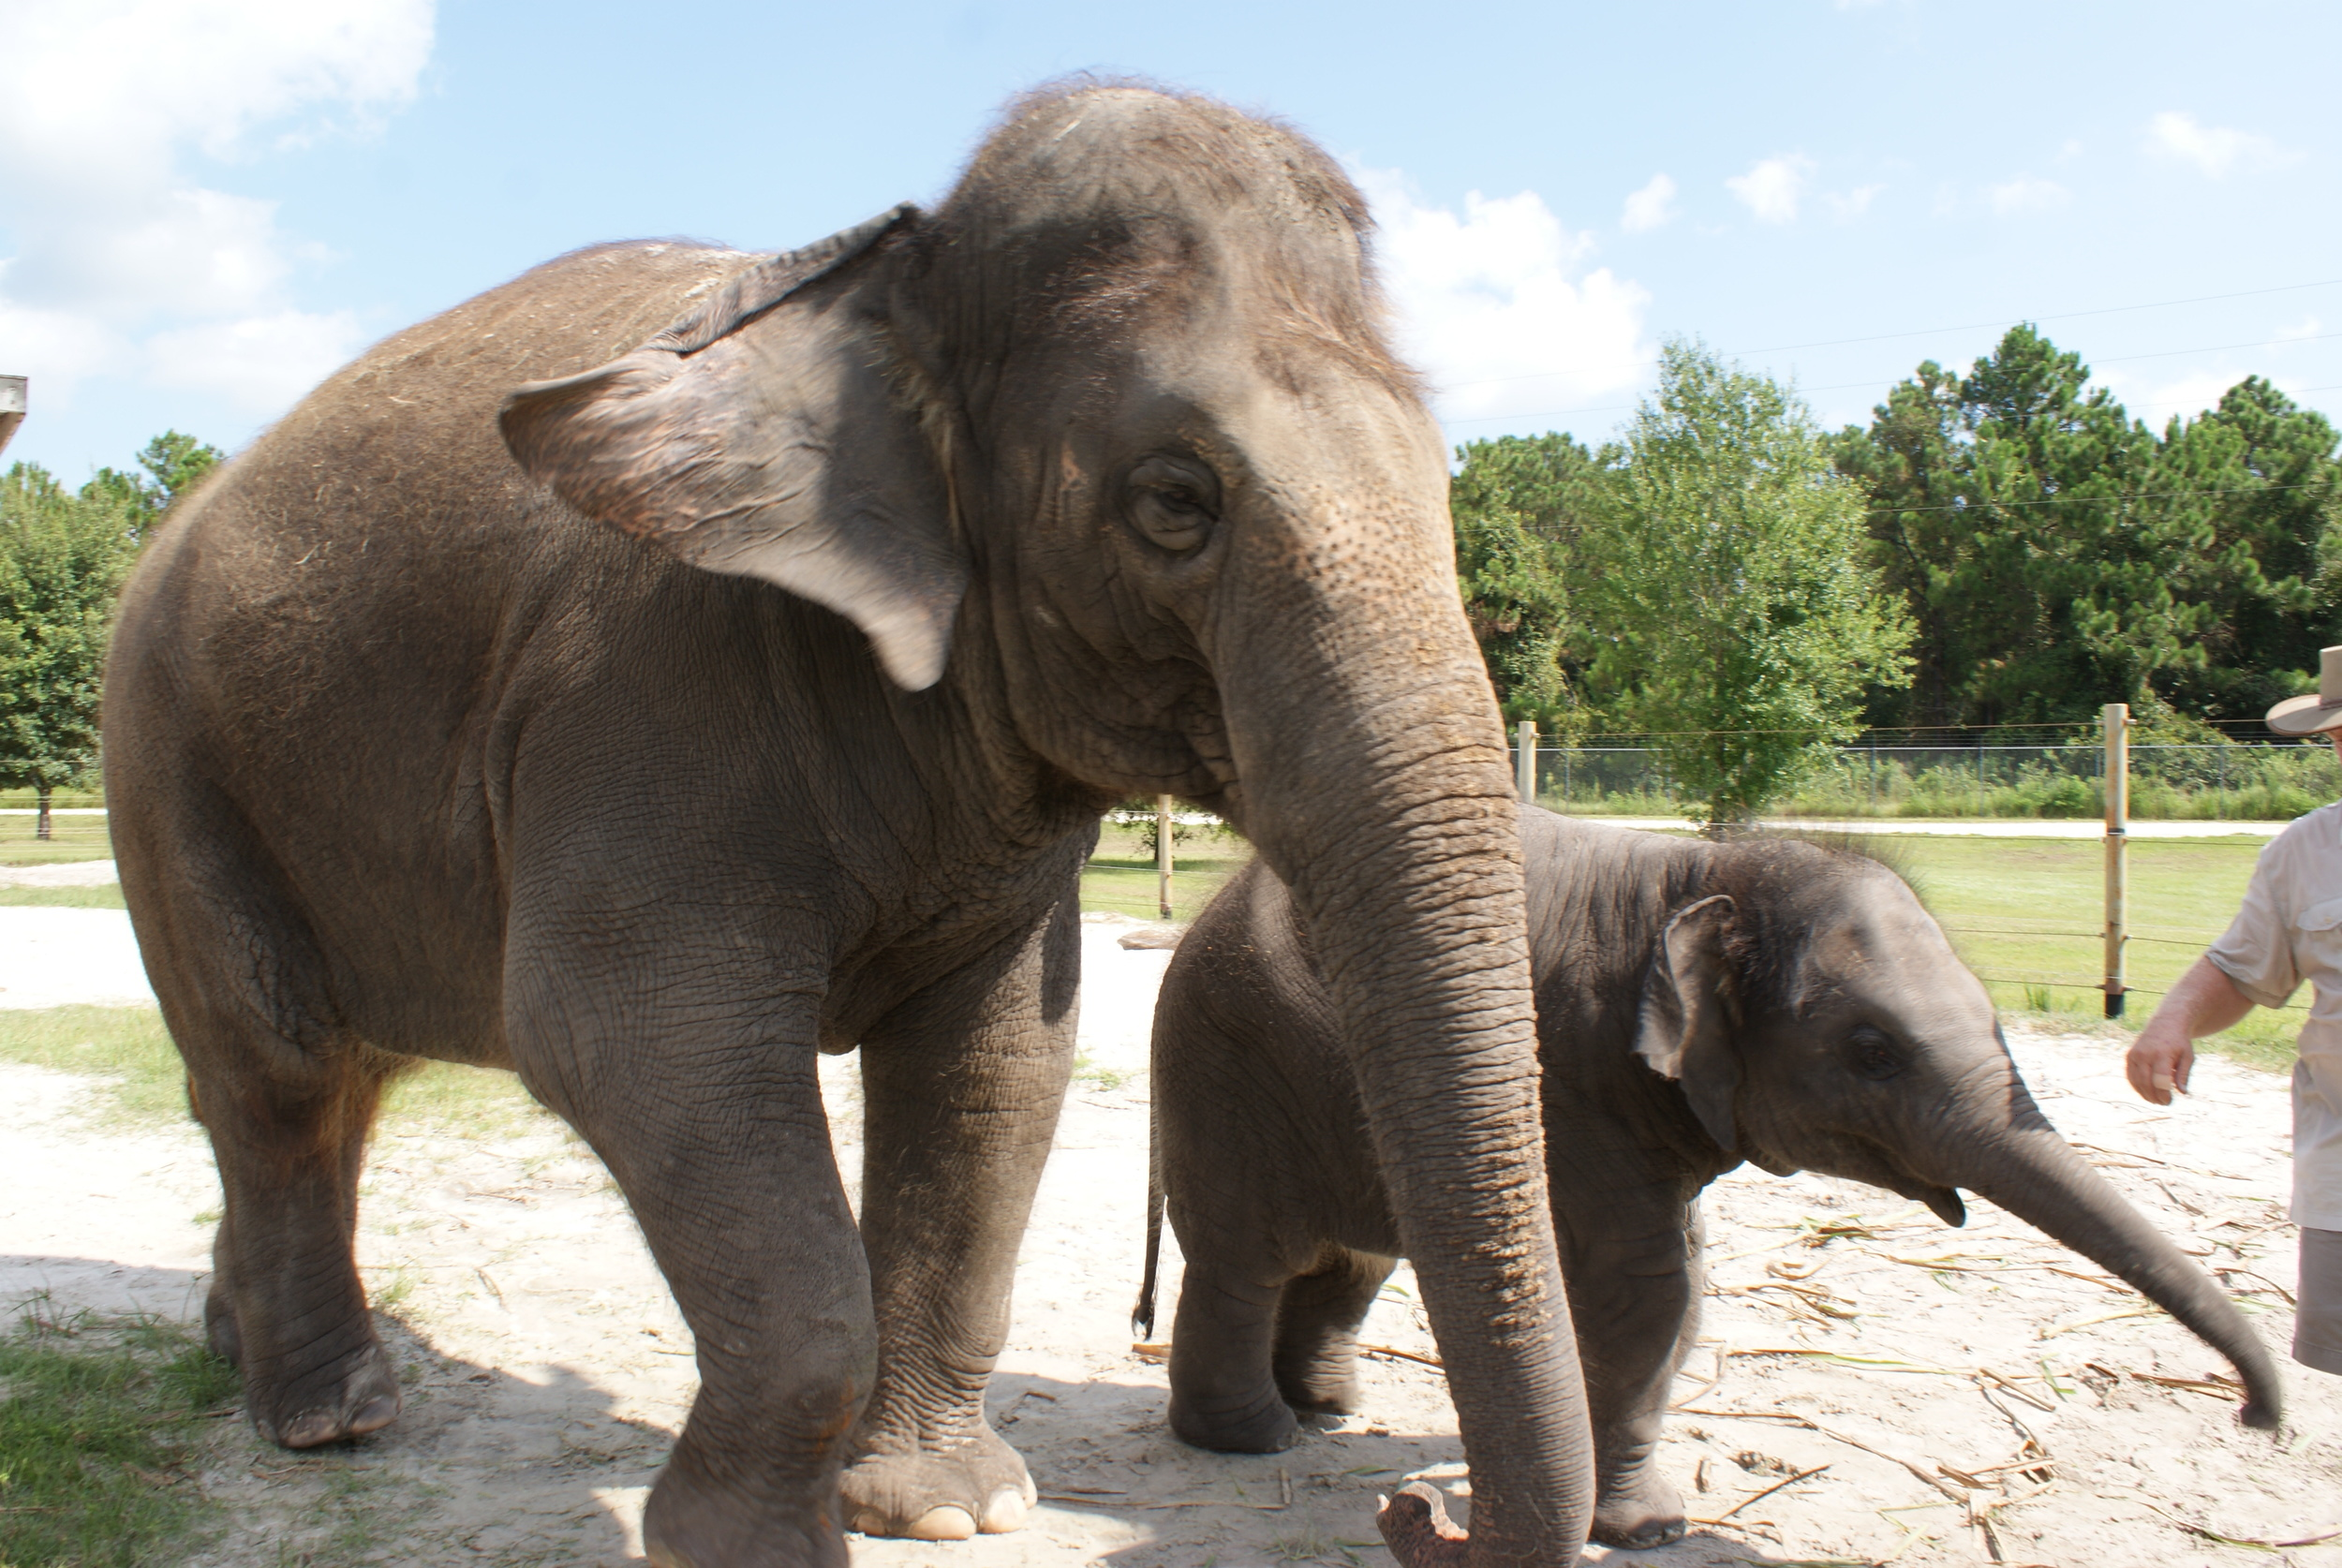 Elephant Conservation Ctr Aug 2014 147.JPG